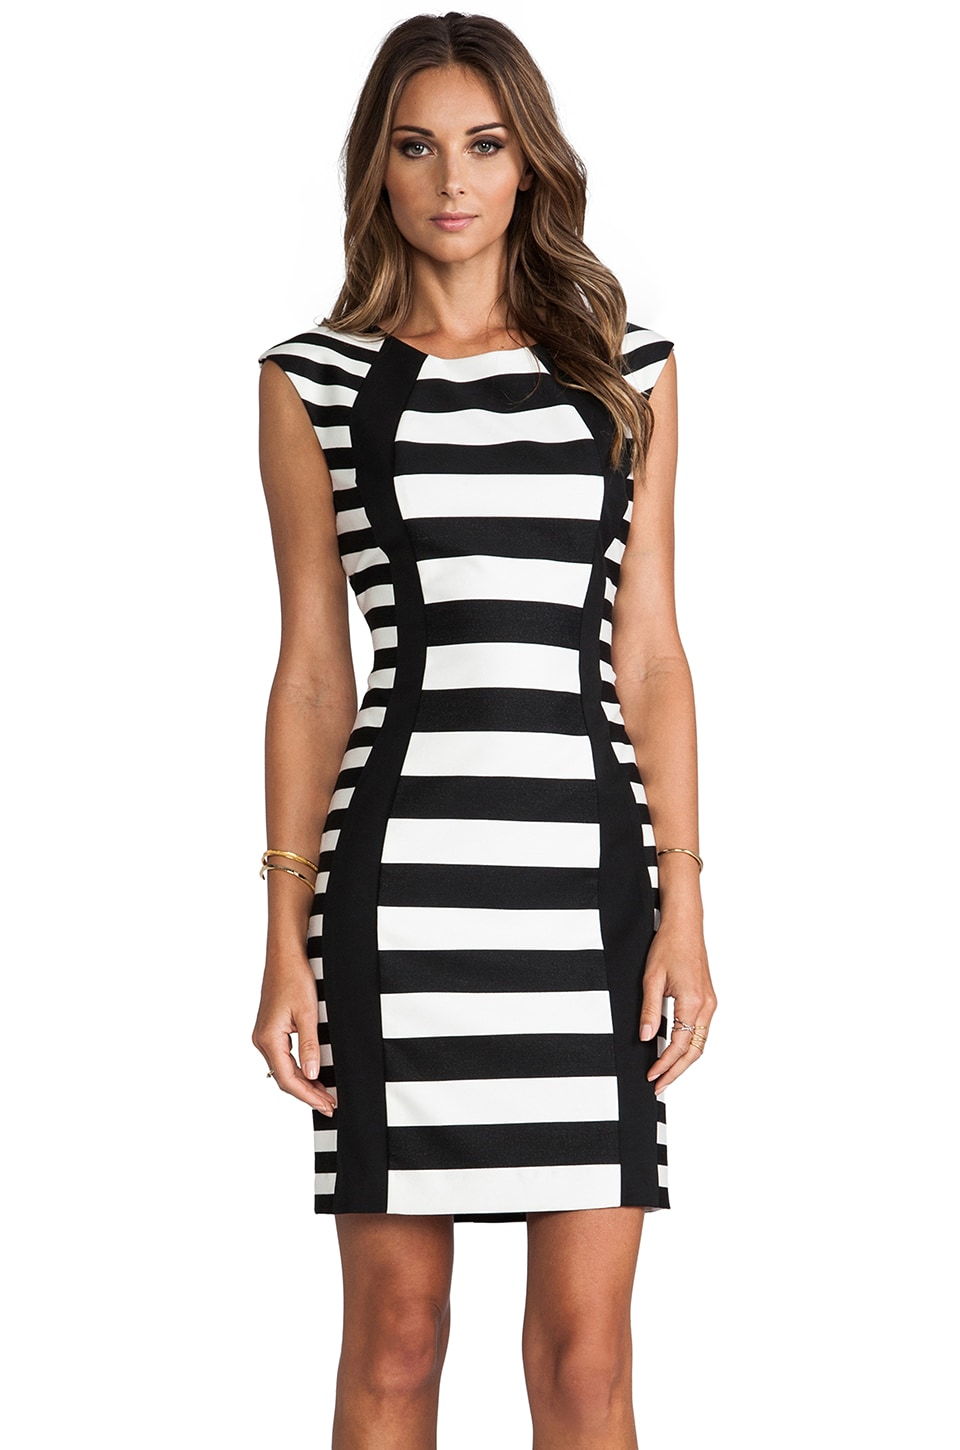 Trina Turk Phlox Dress in Black Stripe